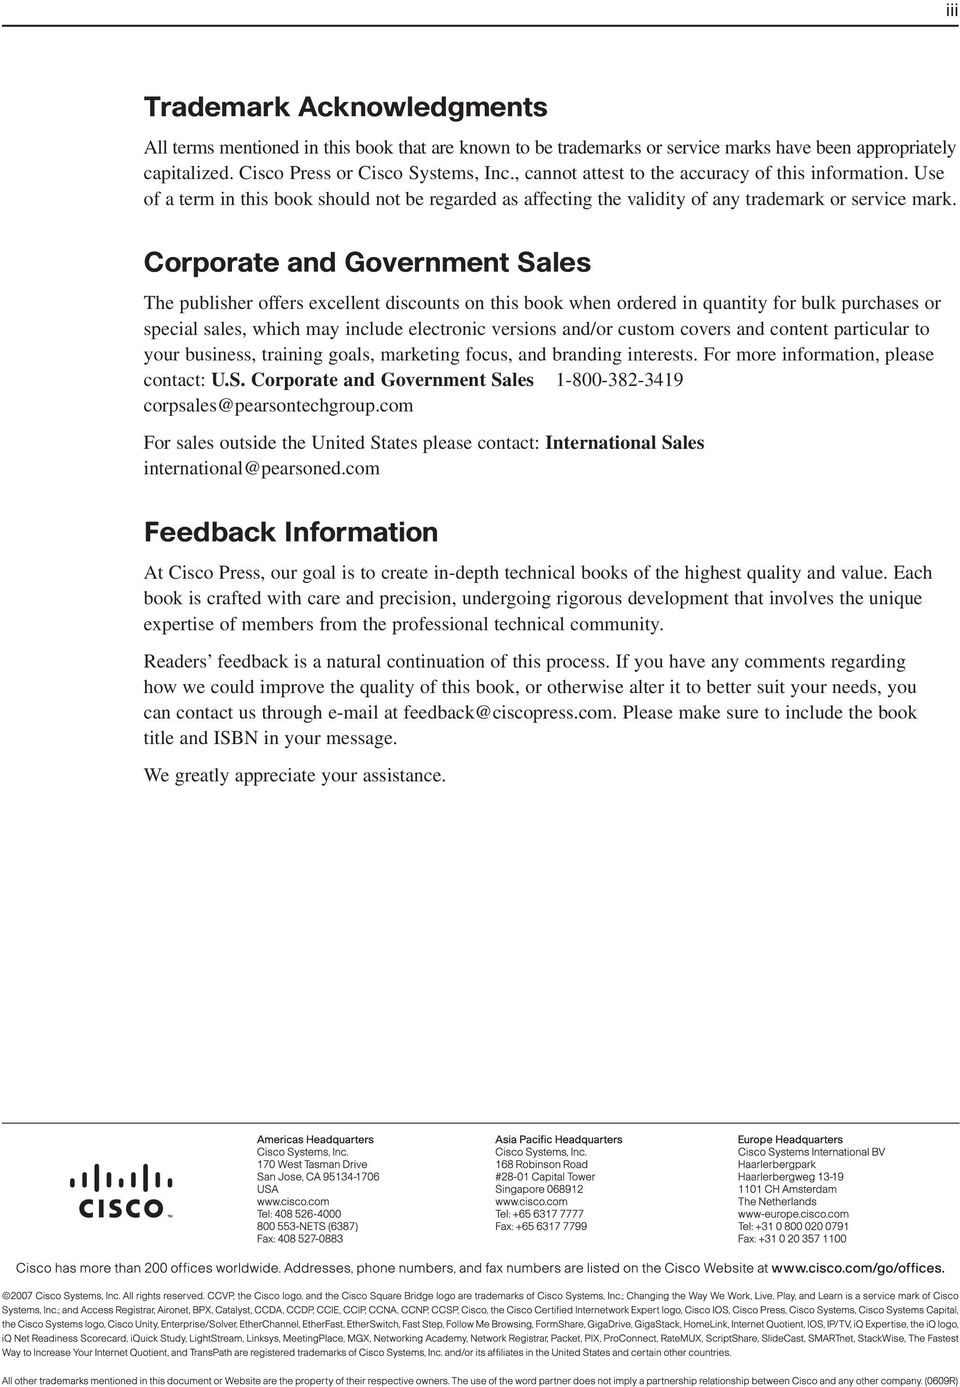 Corporate and Government Sales The publisher offers excellent discounts on this book when ordered in quantity for bulk purchases or special sales, which may include electronic versions and/or custom